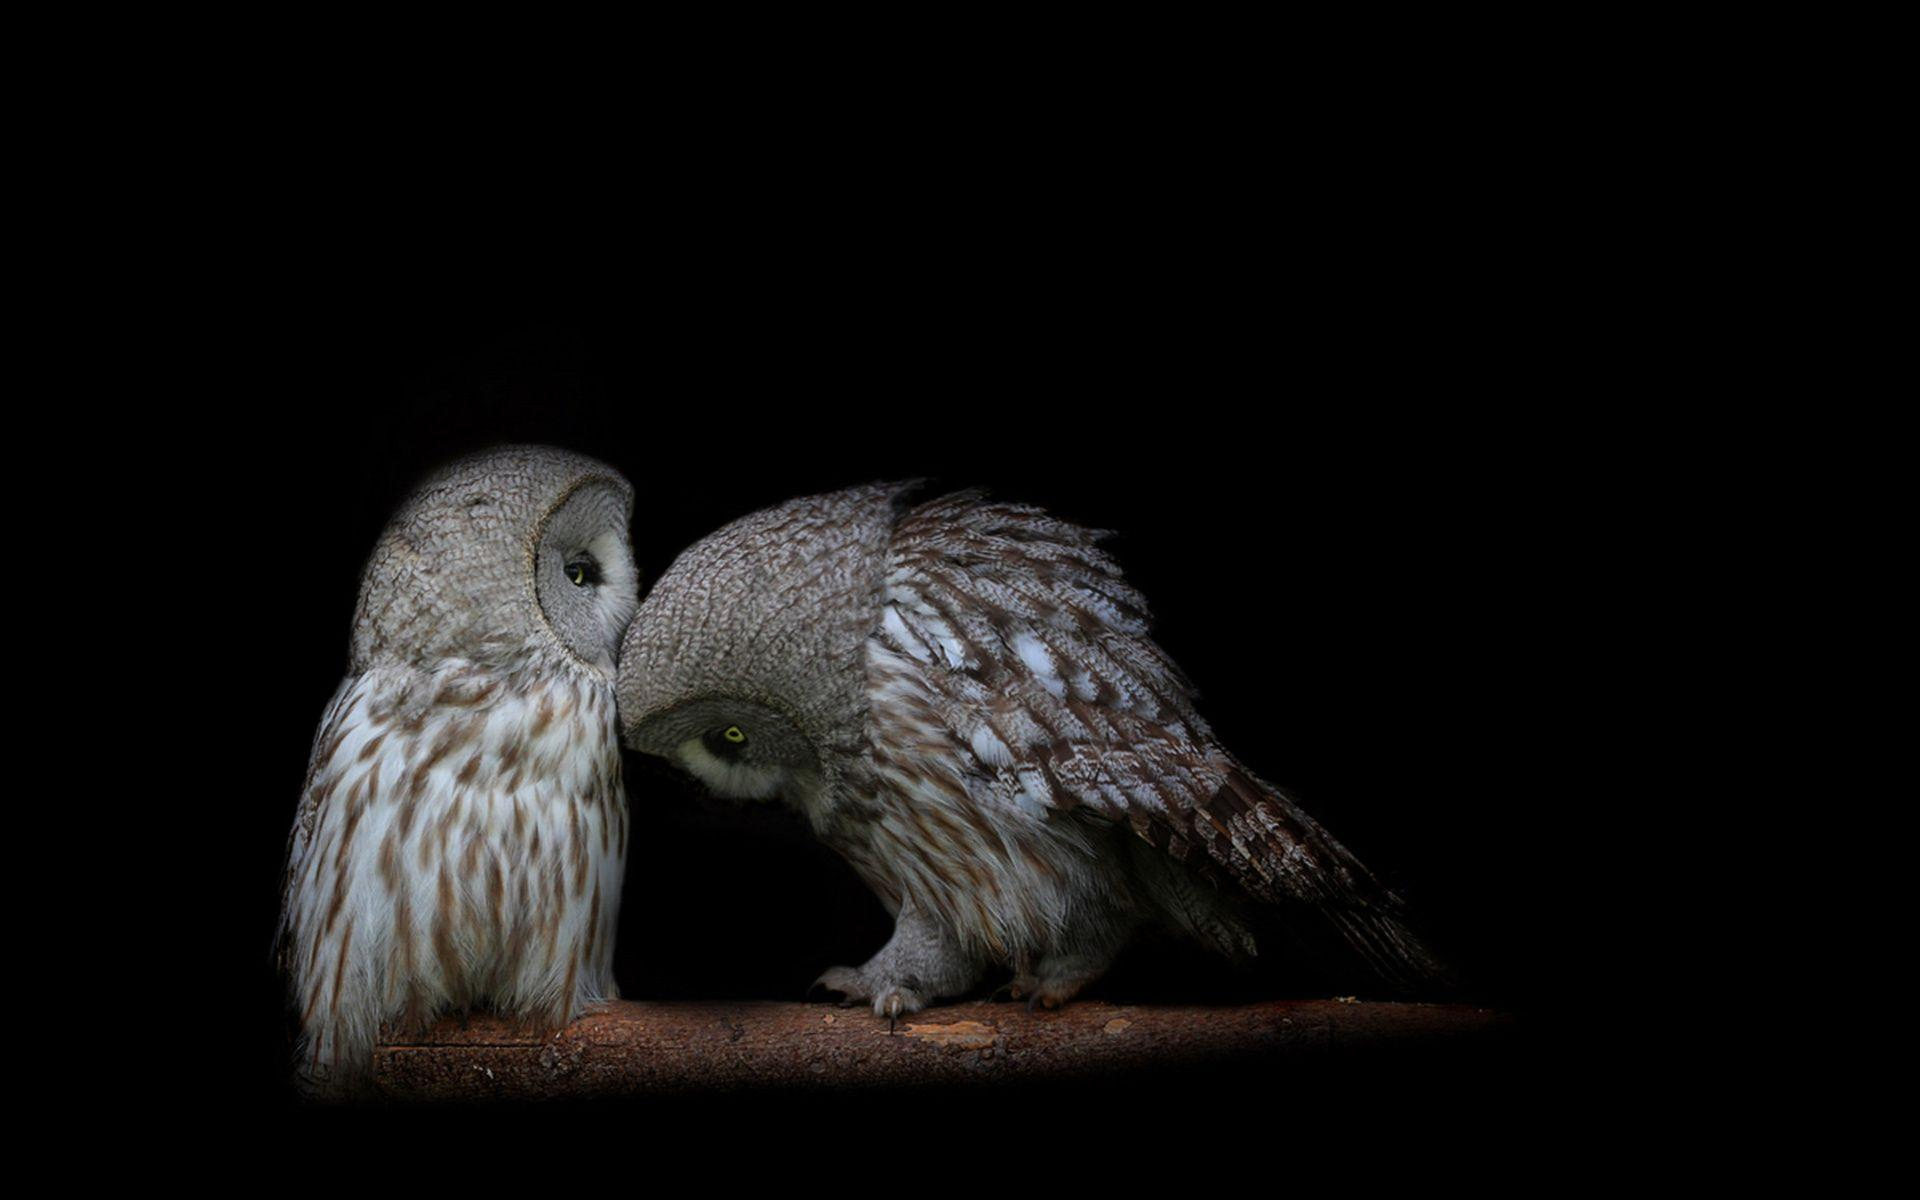 Owl Wallpapers - Wallpaper Cave